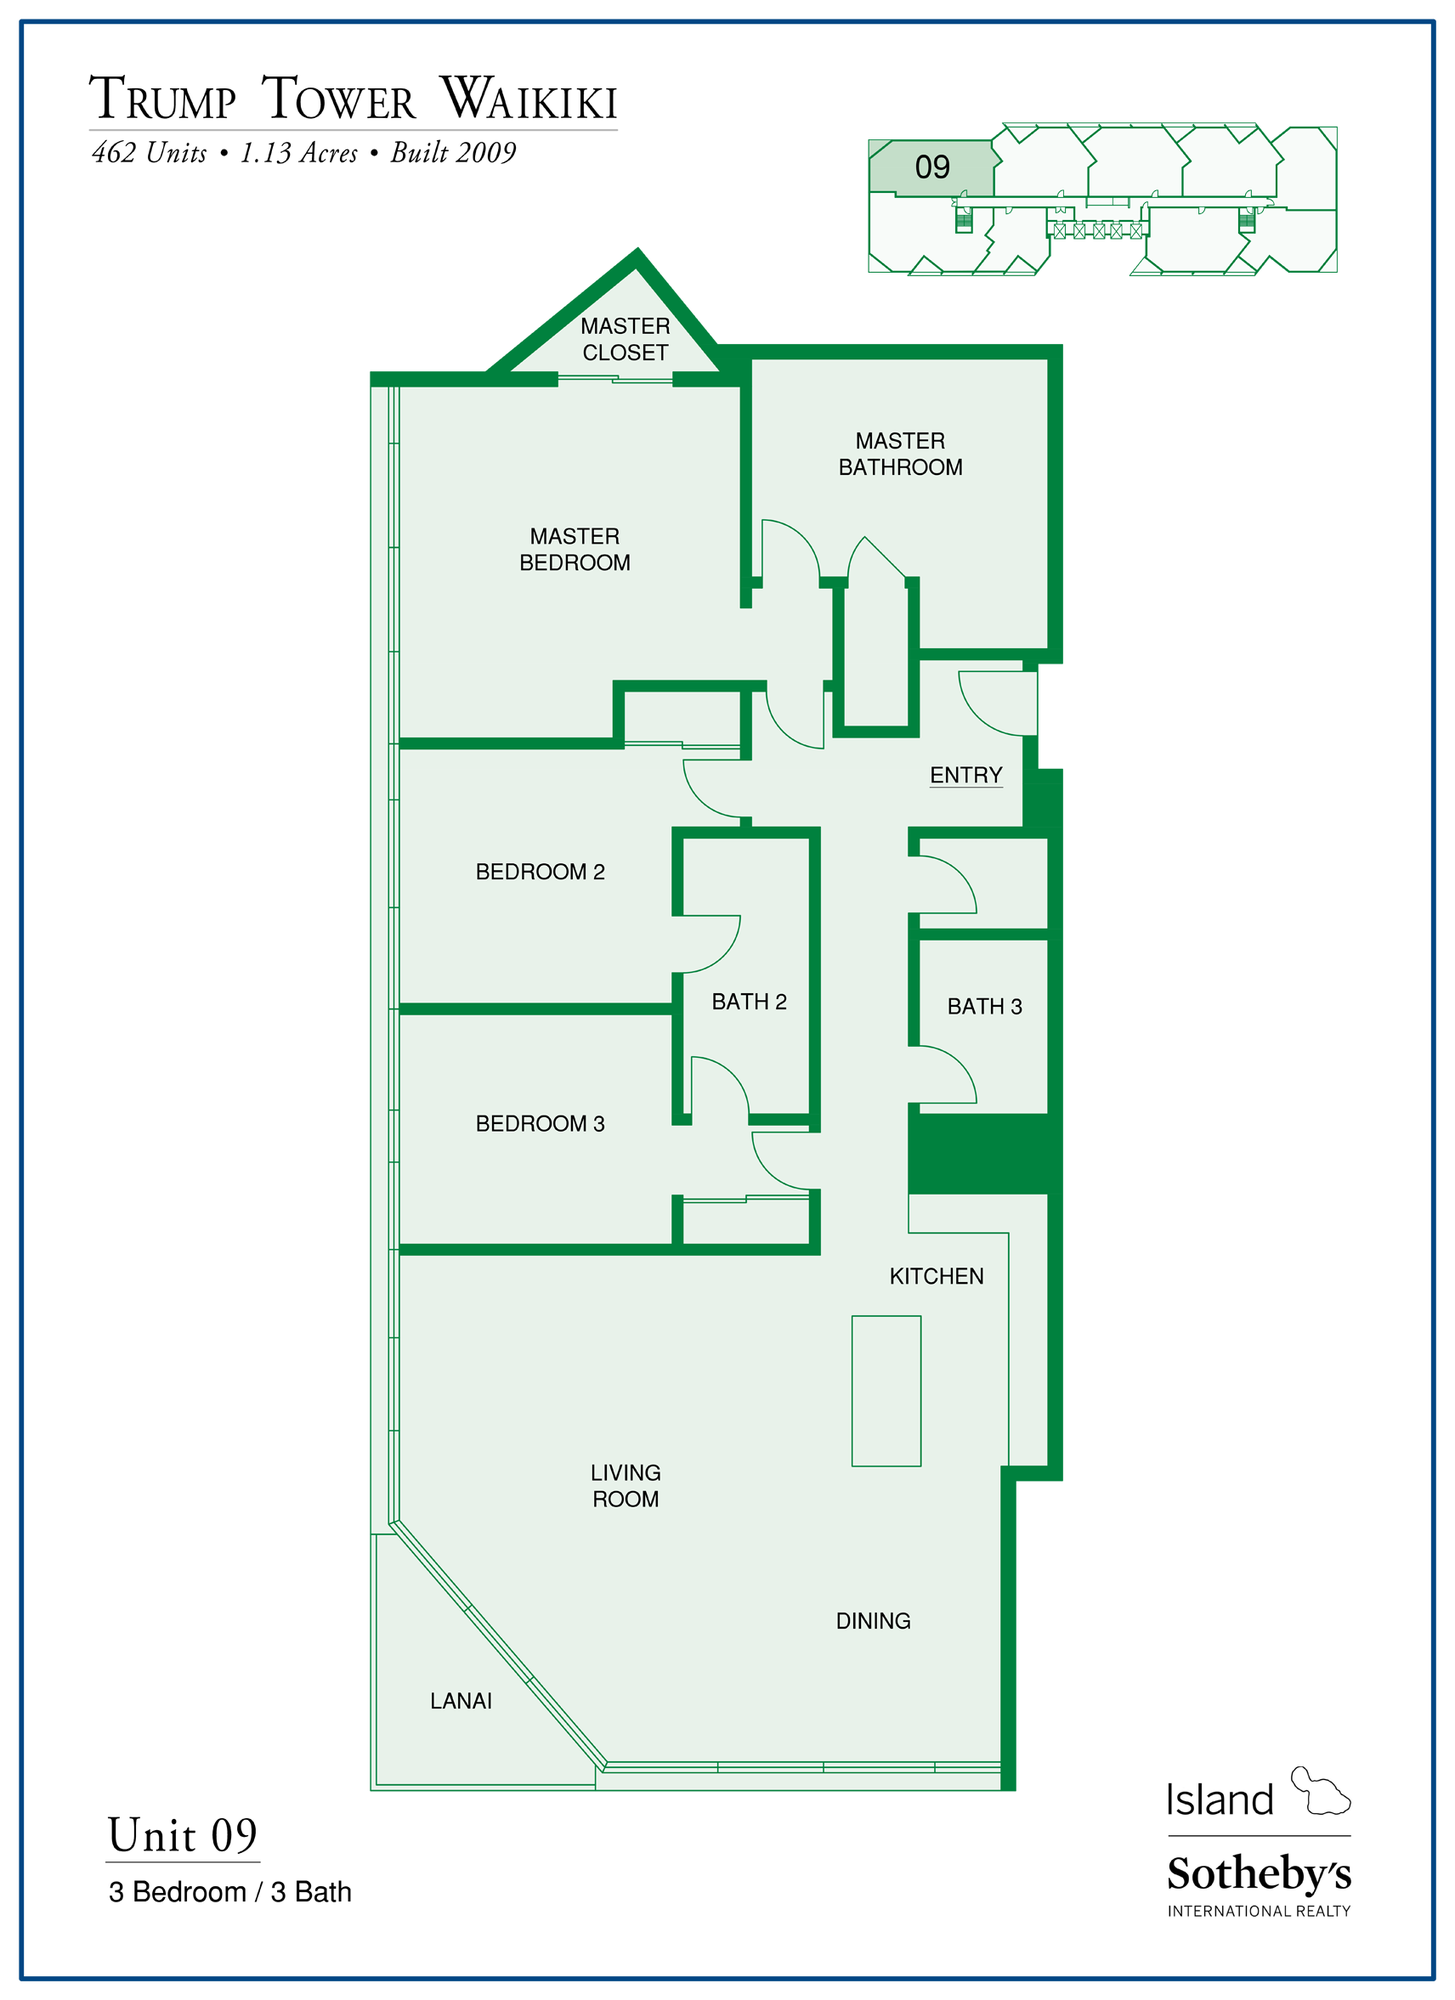 2019 Trump Tower Waikiki Floor Plan